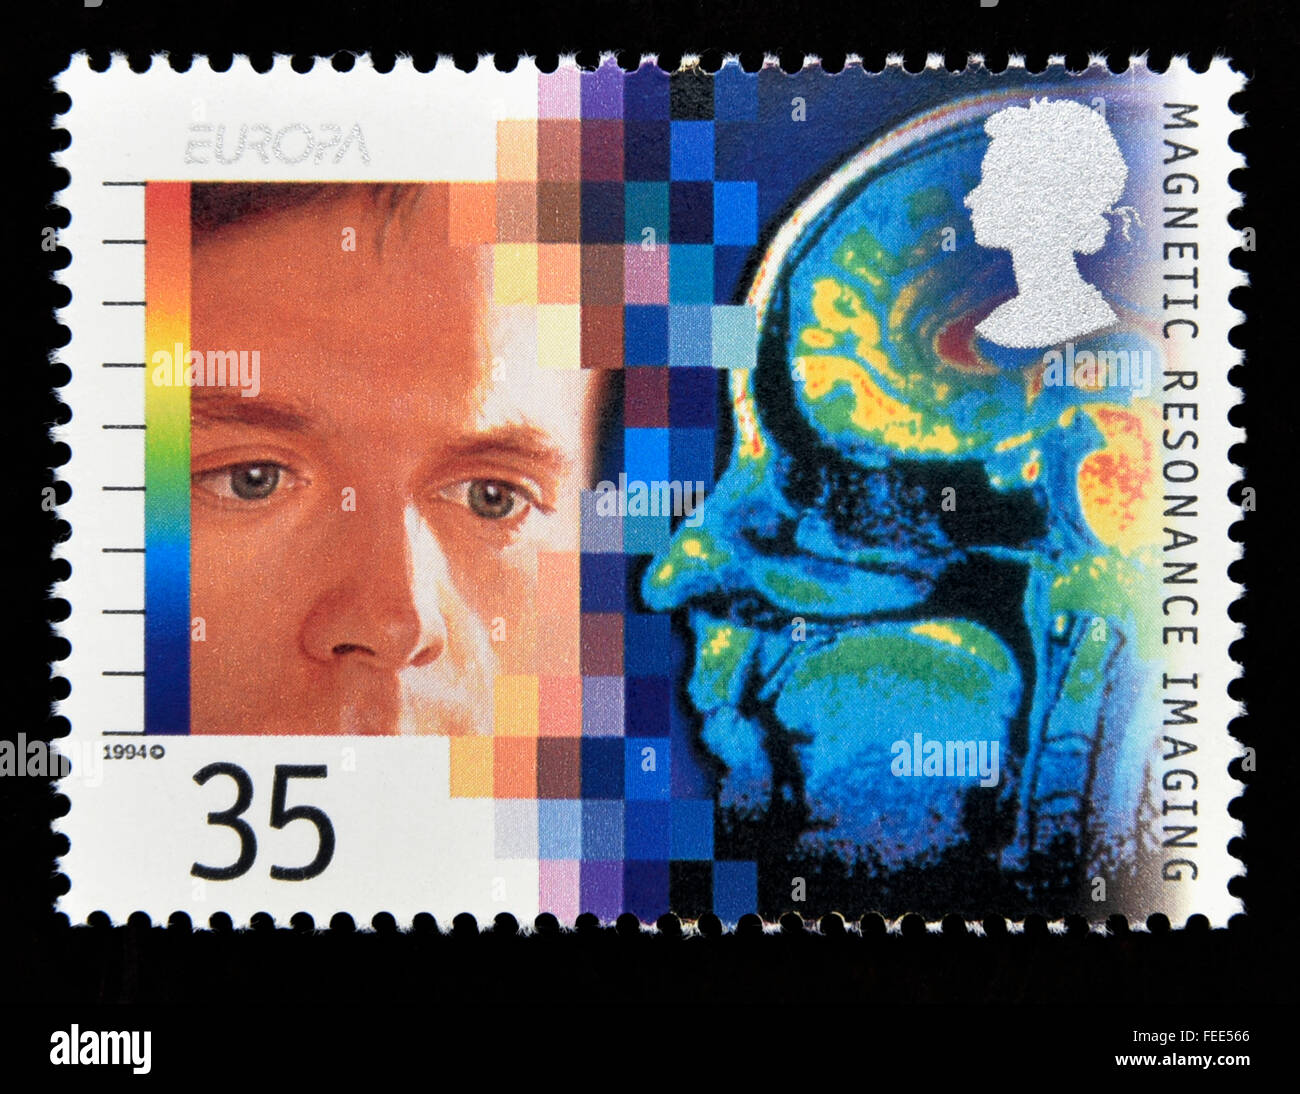 Postage stamp. Great Britain. Queen Elizabeth II. 1994. Europa. Medical Discoveries. Magnetic Resonance Imaging. - Stock Image